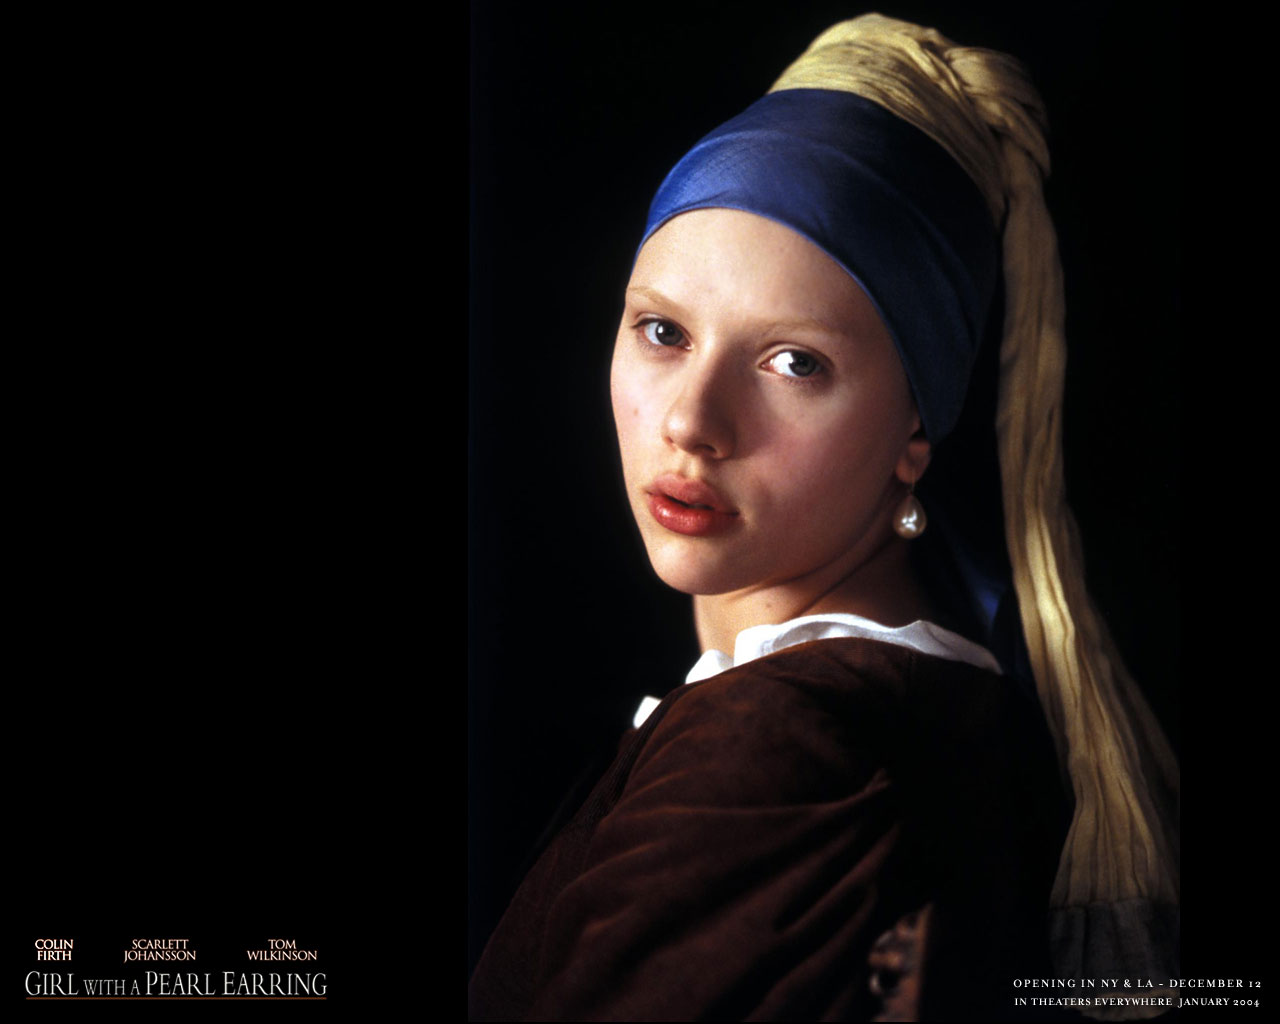 Cakes in Disguise: Girl with the Pearl Earring